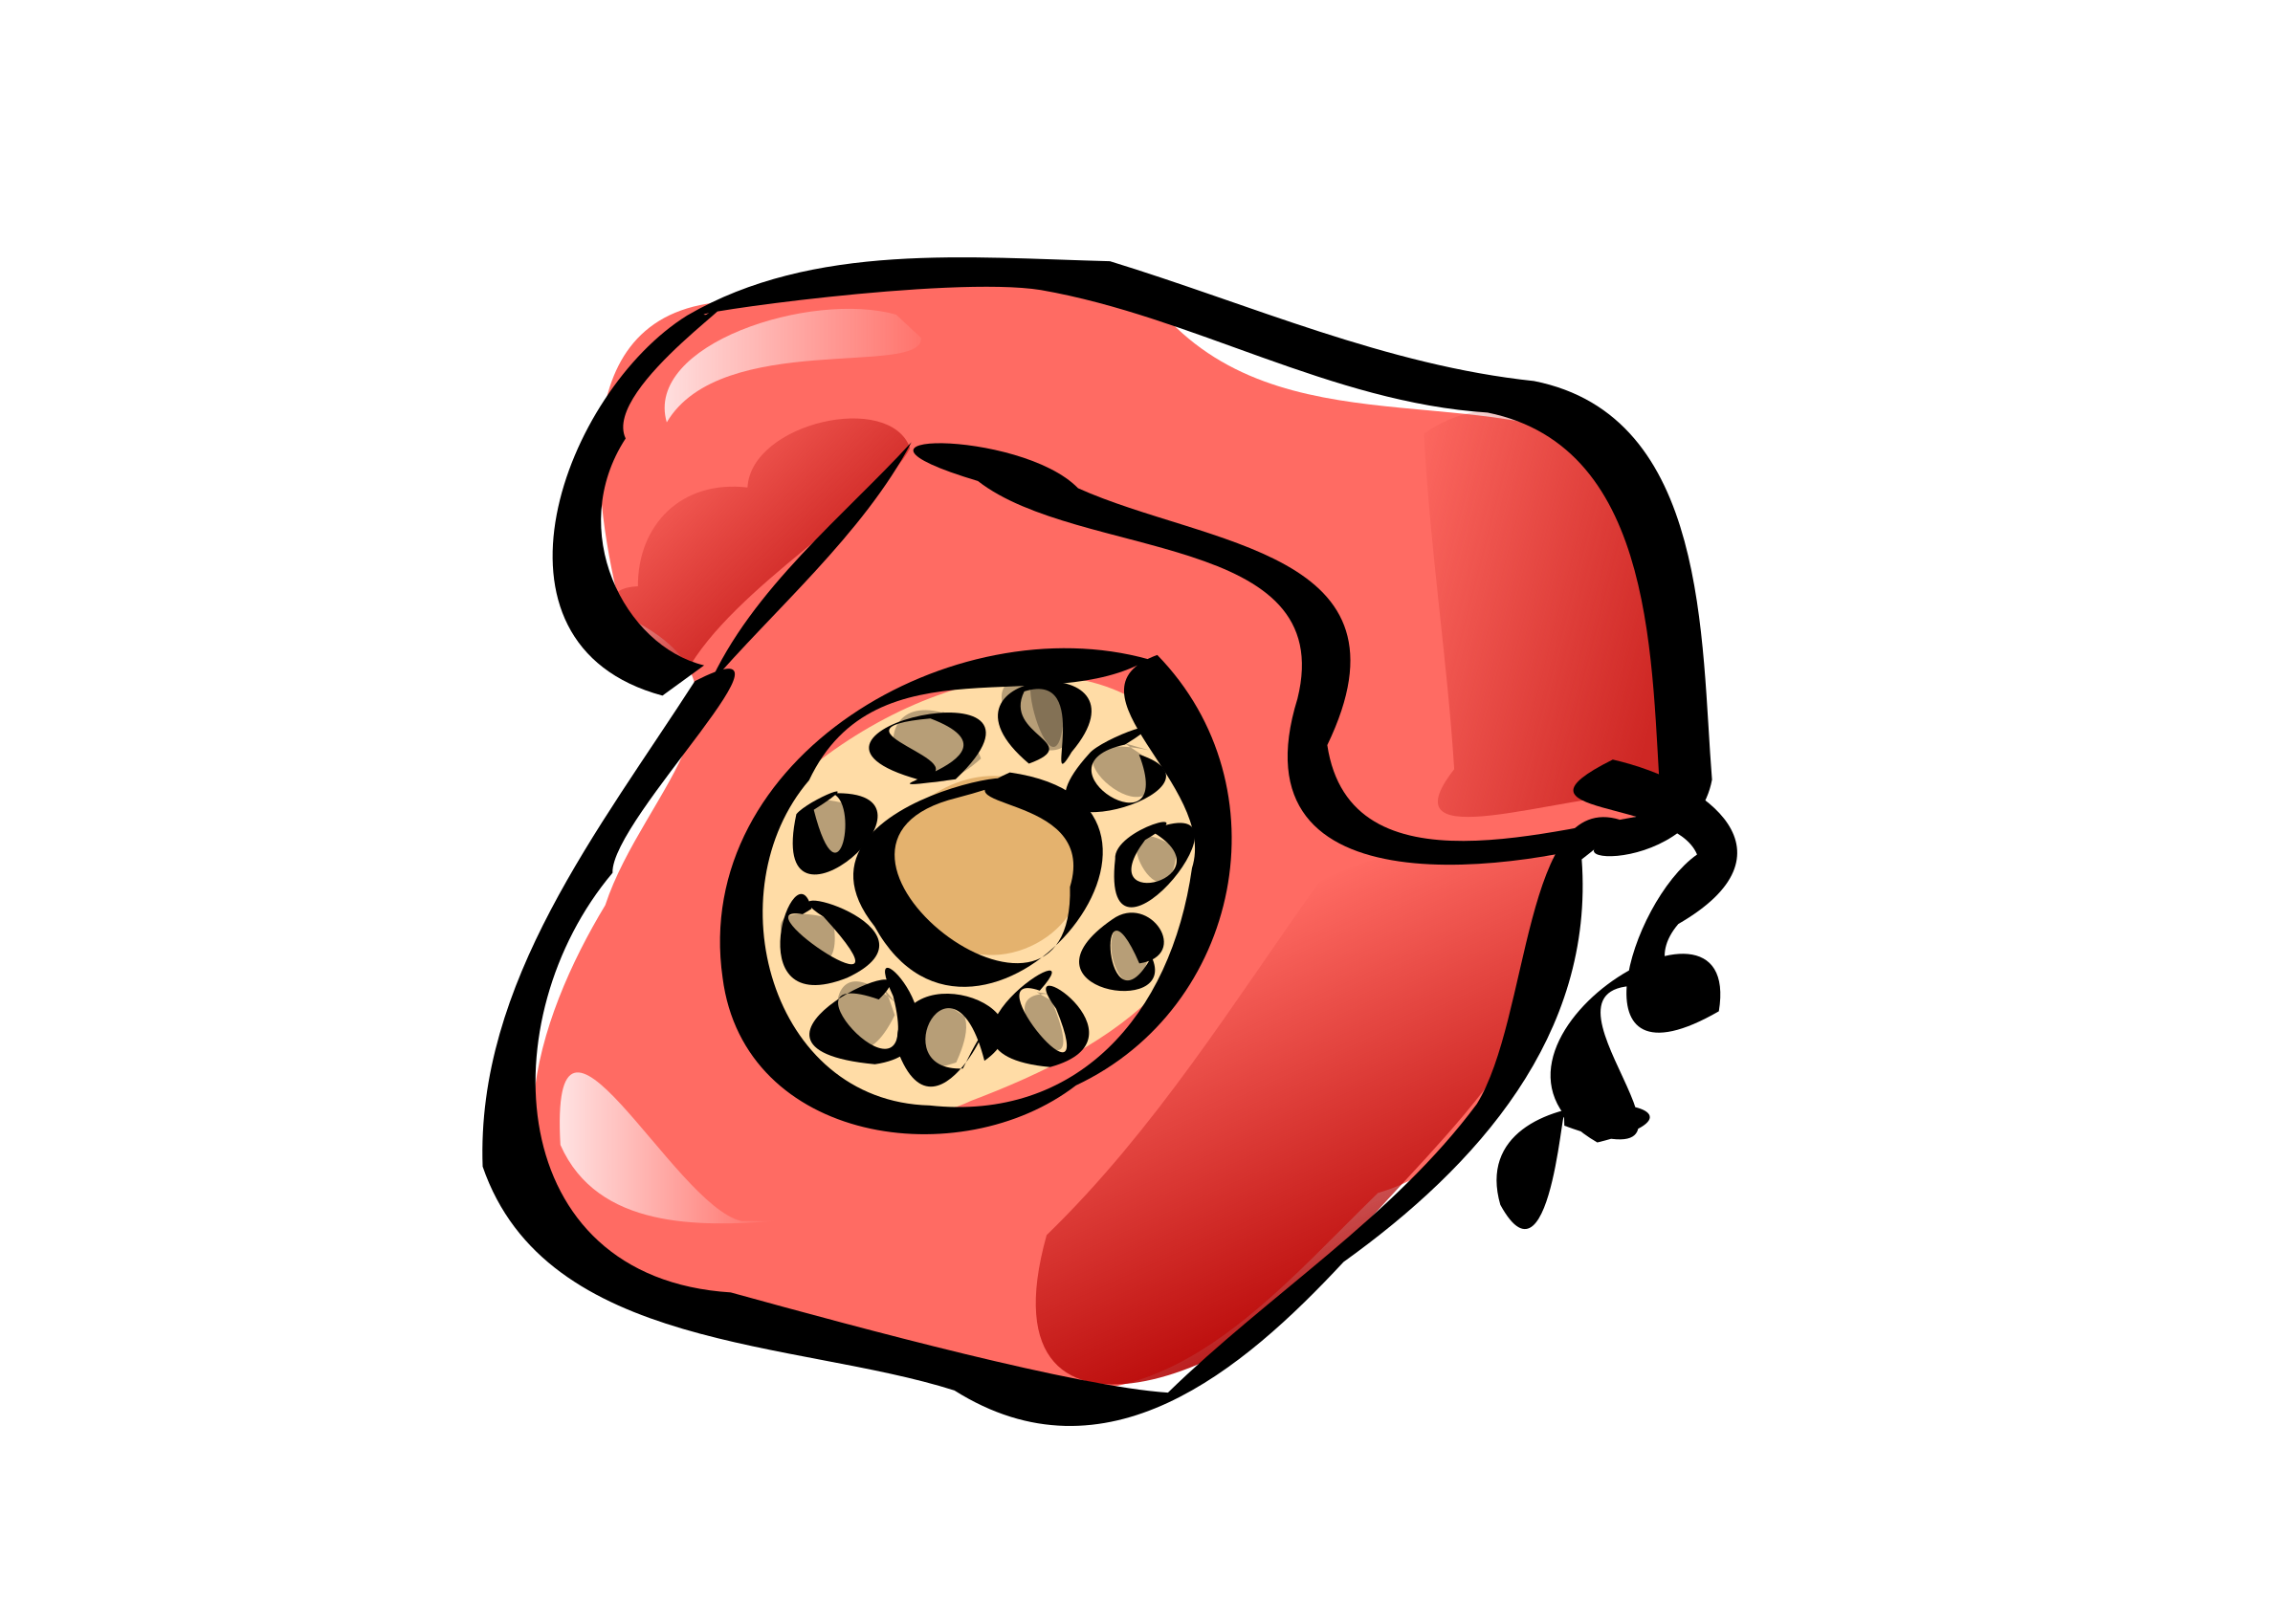 classic phone zazou by openclipart_test